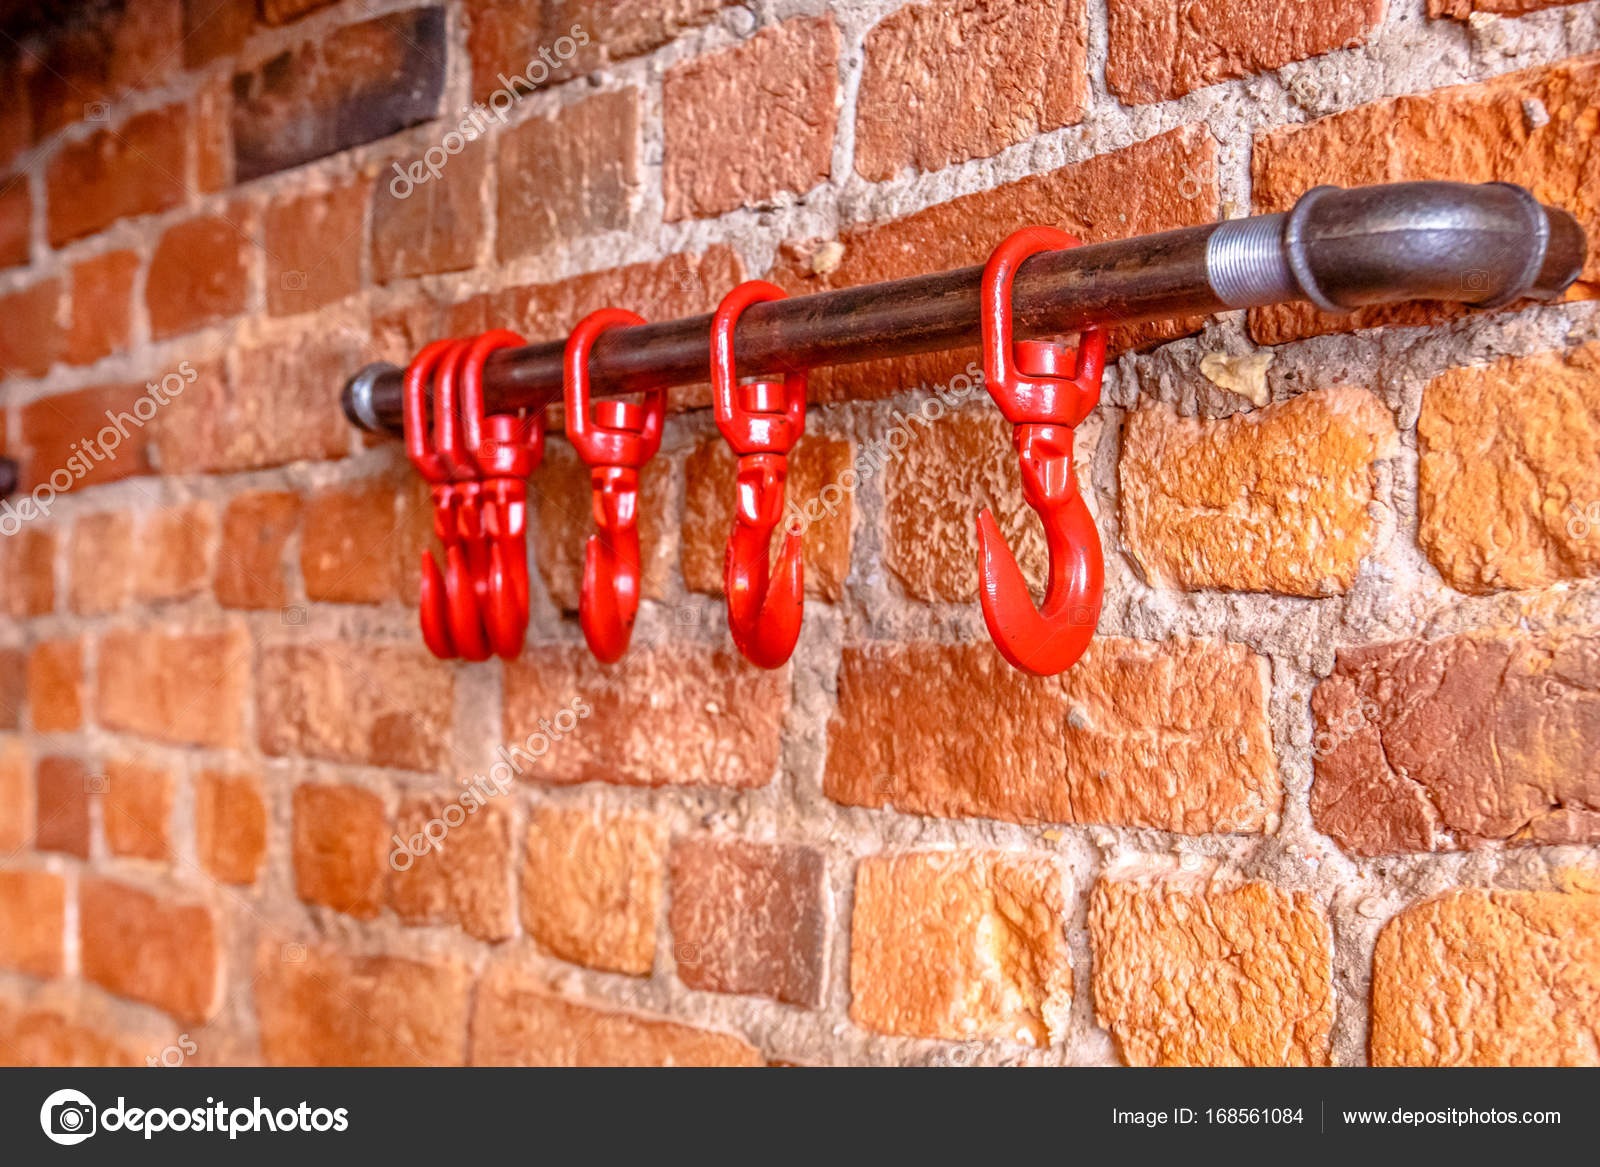 Red hooks on the brick , as decorative elements brutal bar or re